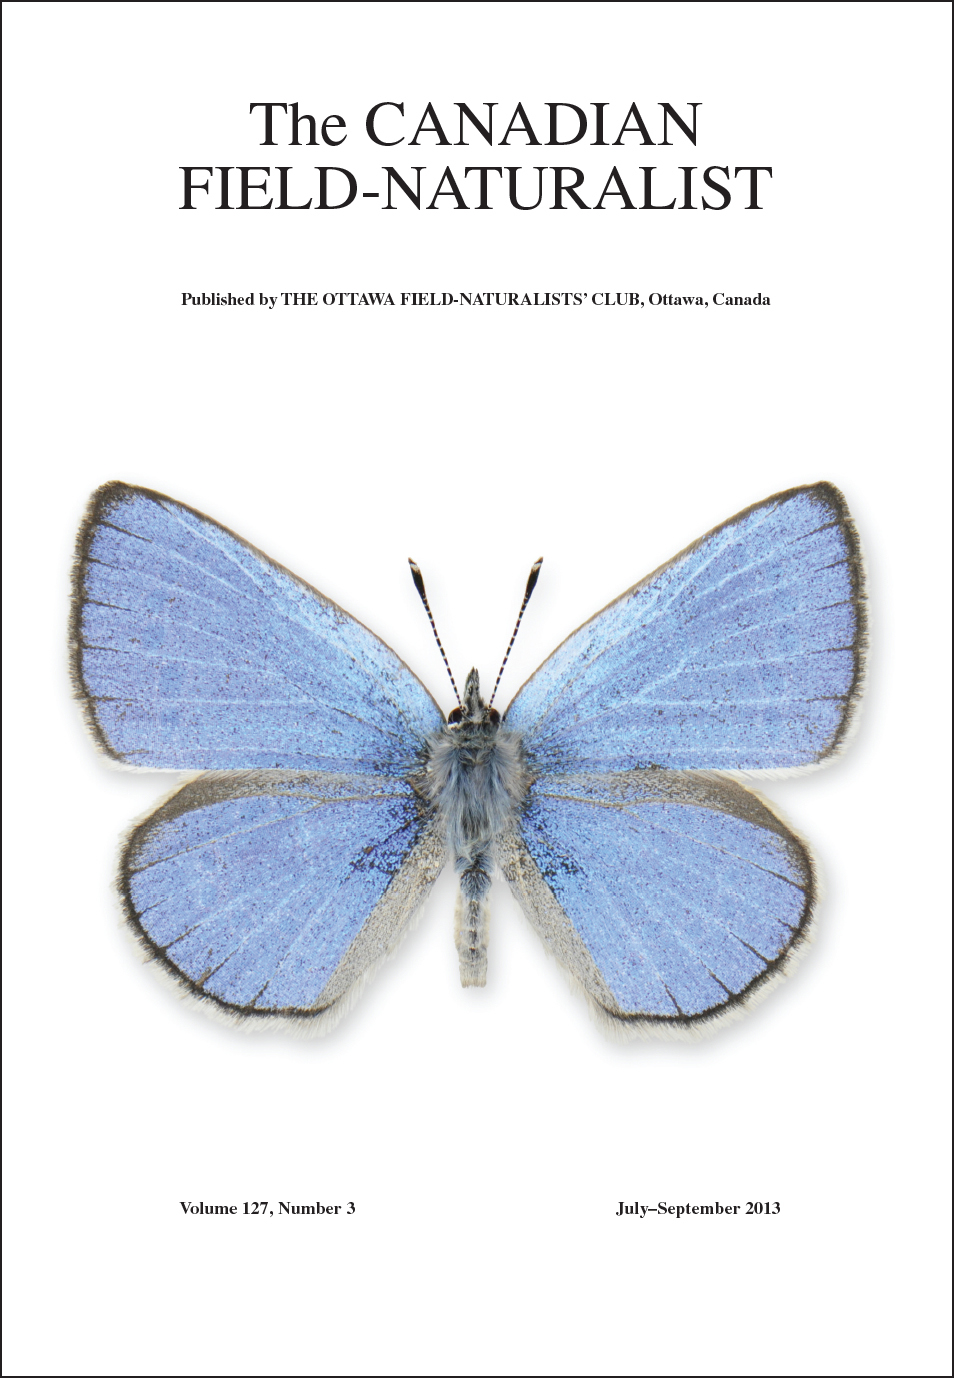 Cover photo (butterfly) vol 127 issue 3, The Canadian Field-Naturalist